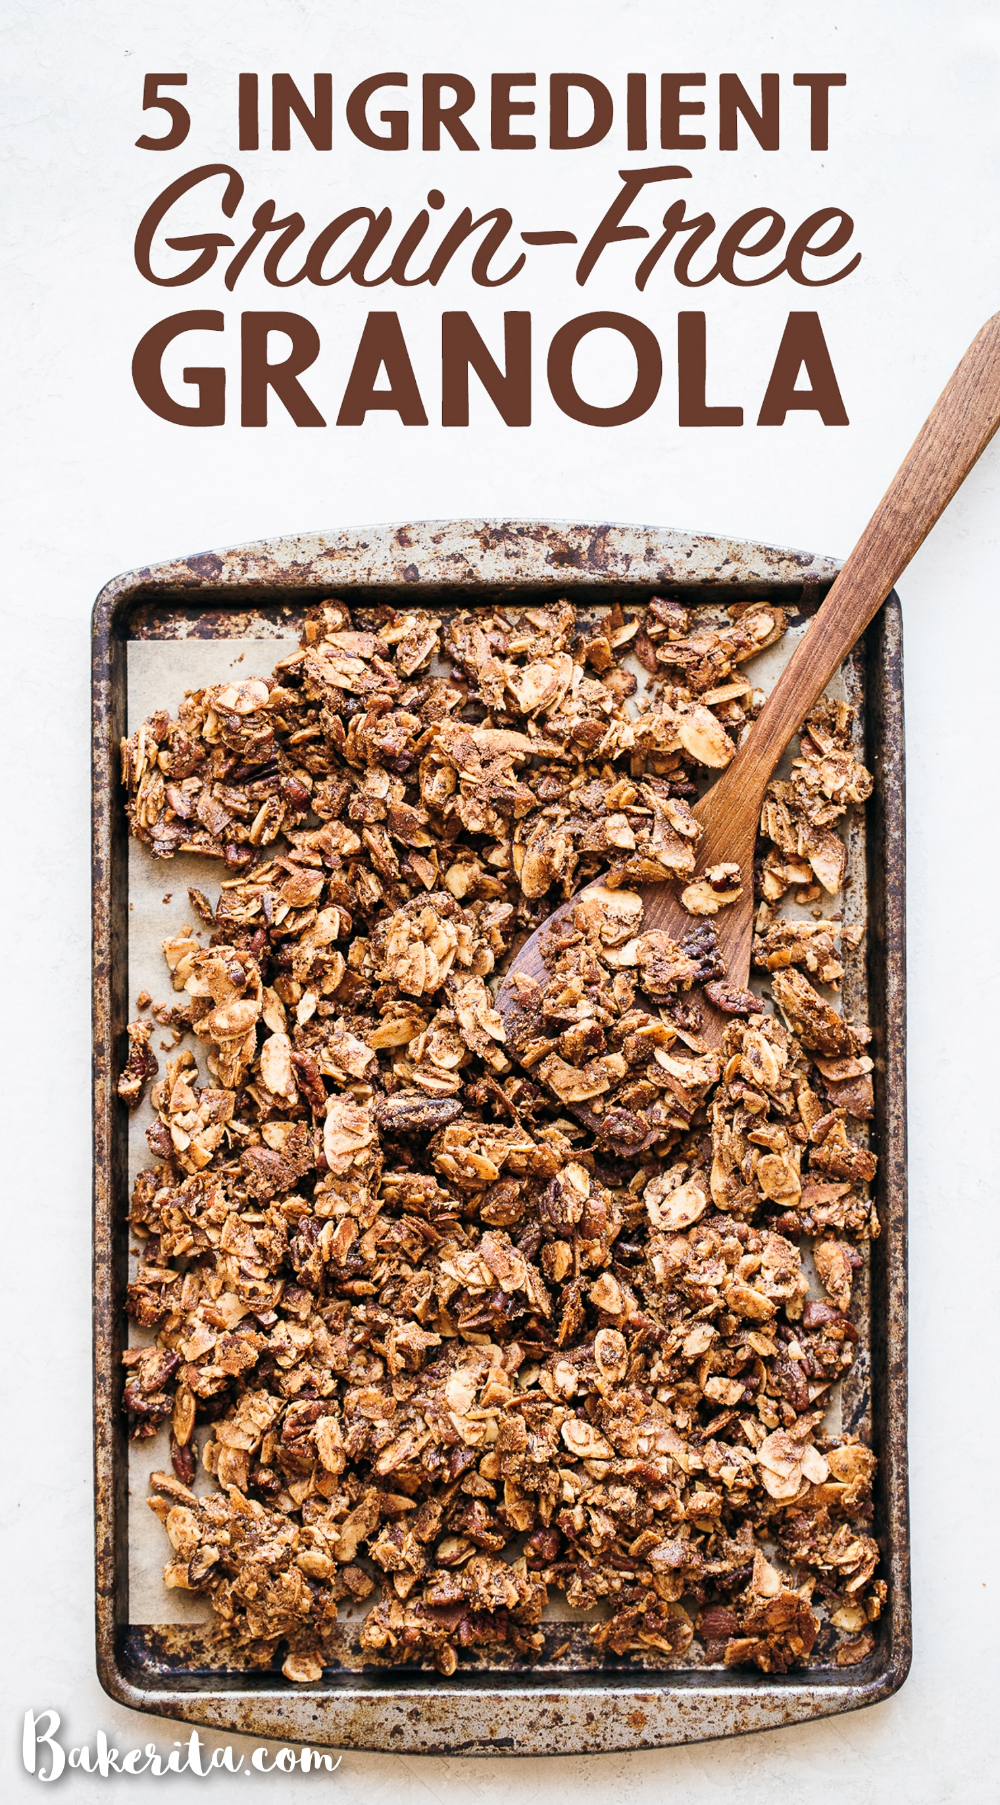 This 5-Ingredient Grain-Free Granola is the perfect simple granola recipe, minus the grains! It uses nuts and coconut in place of the oats to make a filling and delicious vegan & paleo granola. #paleogranola #grainfree #granola #grainfreegranola #vegan #5ingredients #breakfast